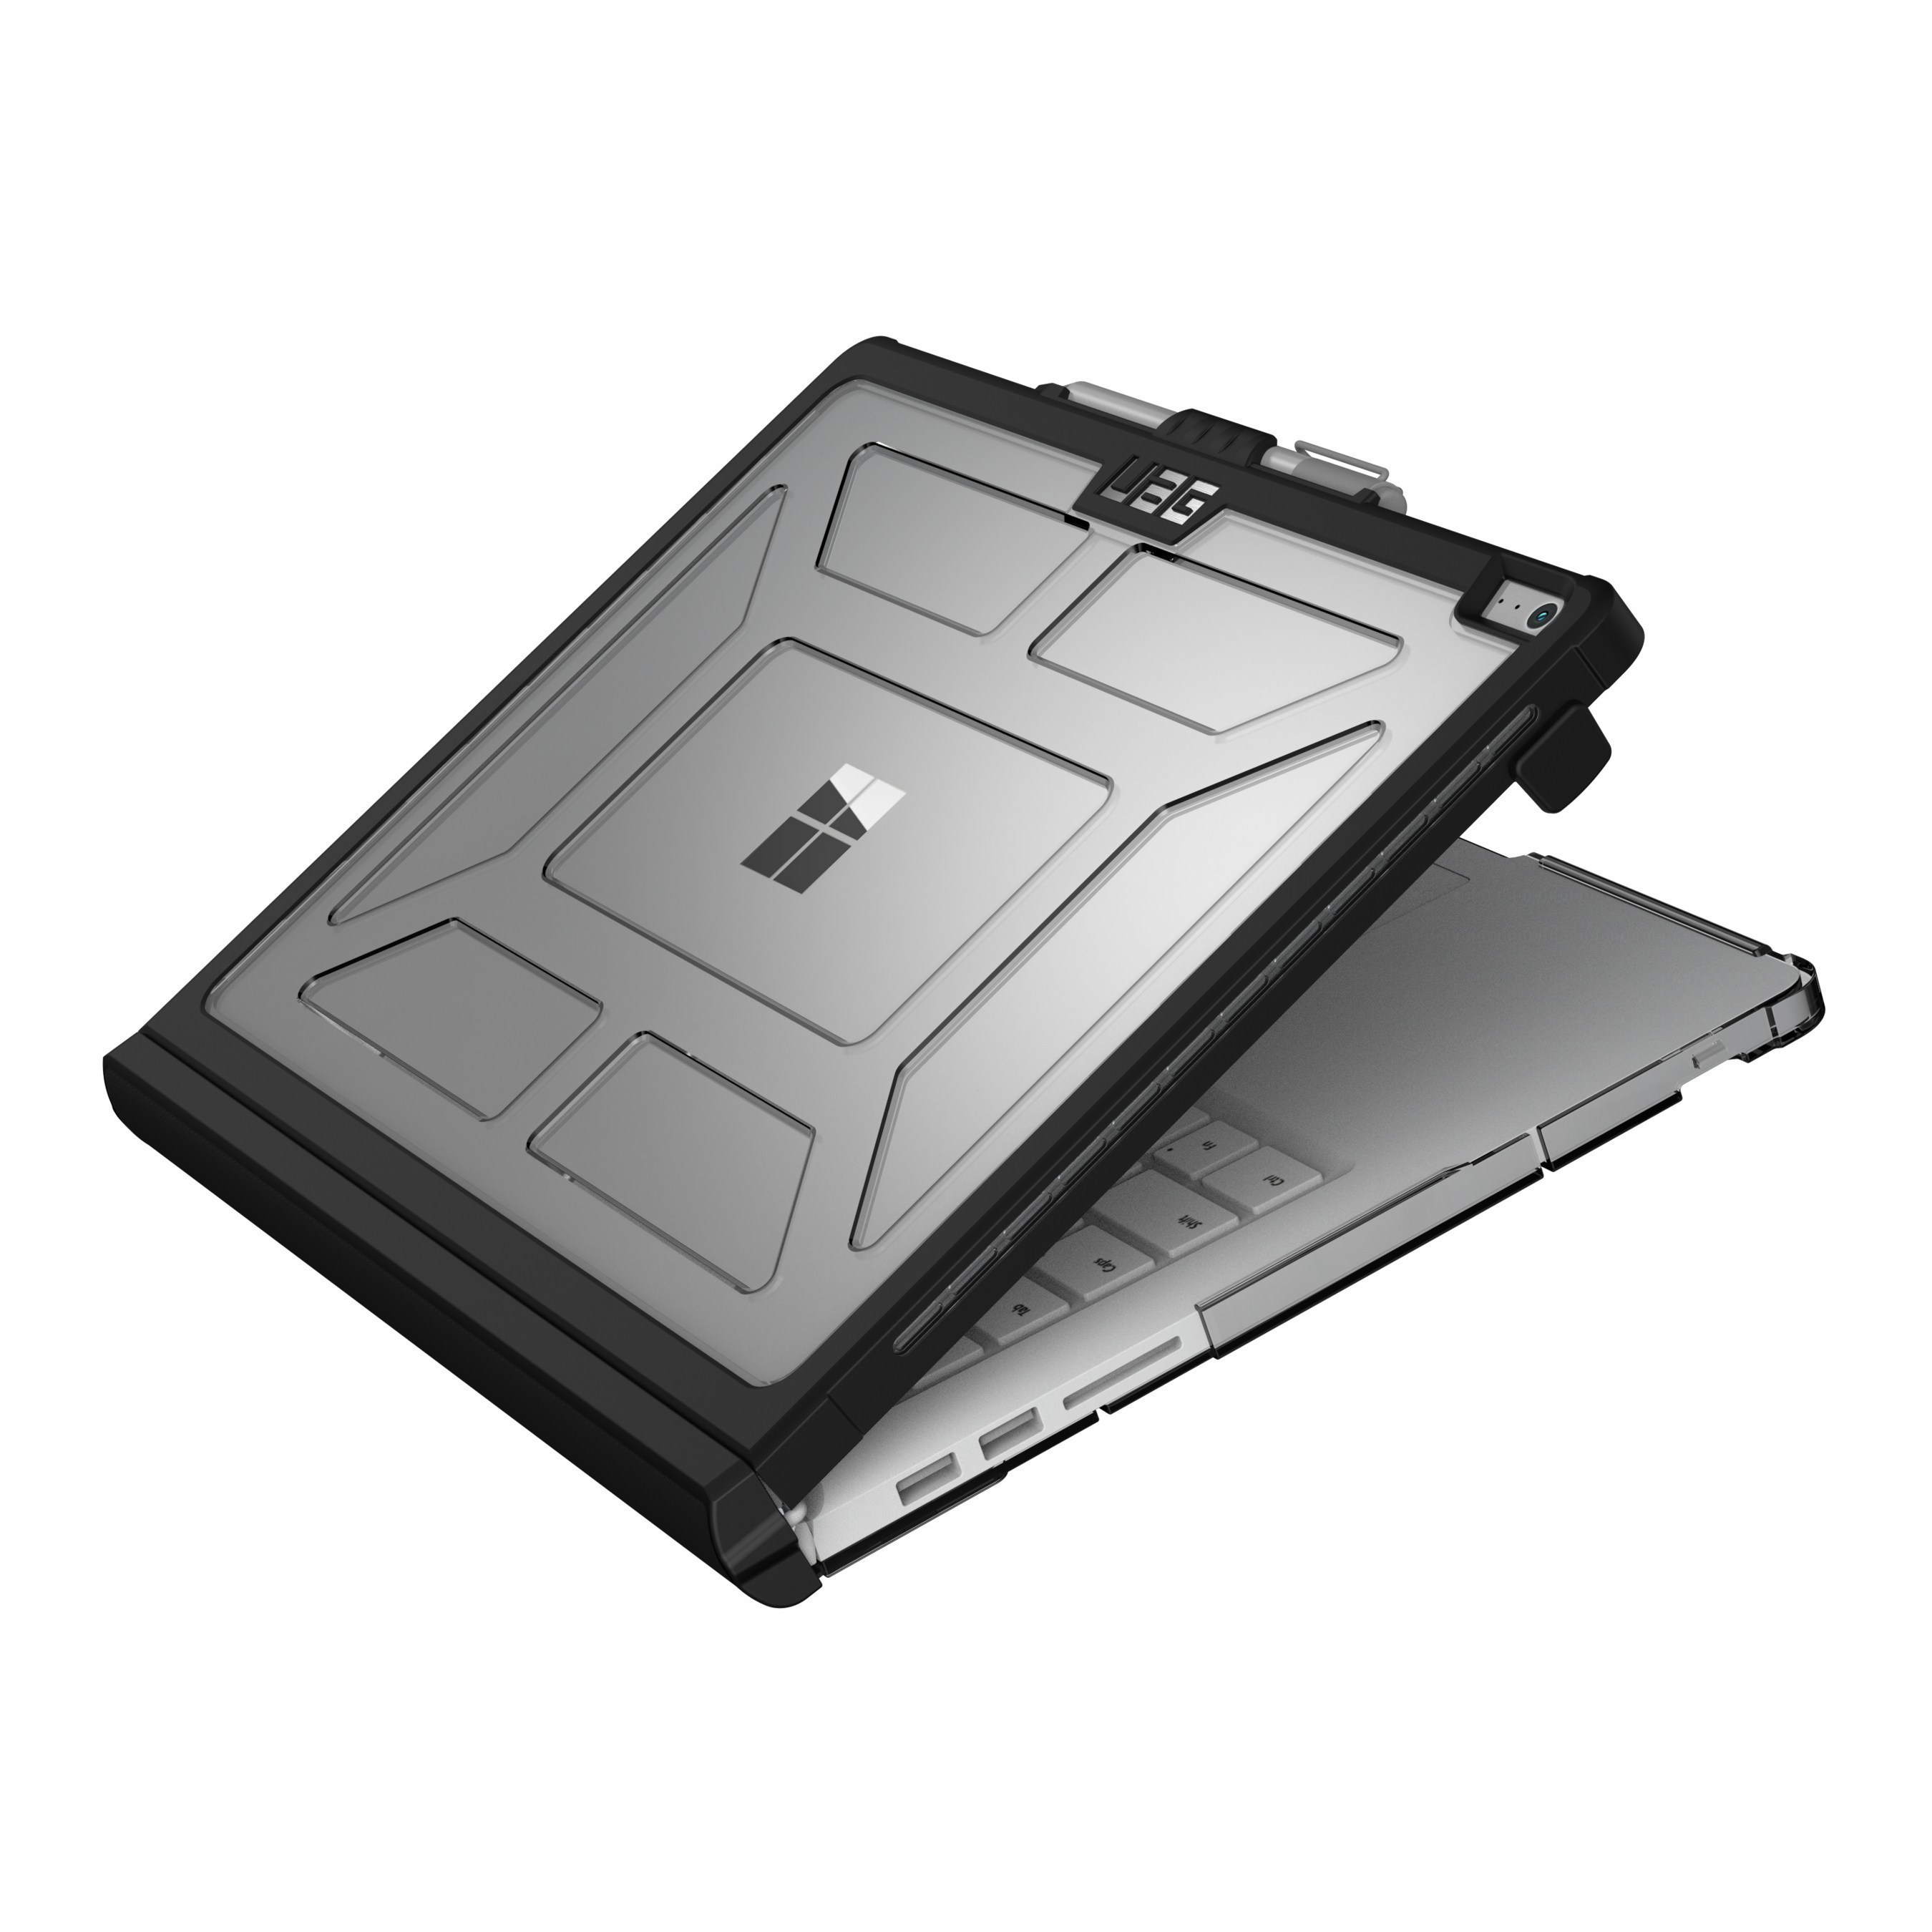 UAG Releases Rugged Mil-Spec Case for Microsoft's Surface Book with Performance Base